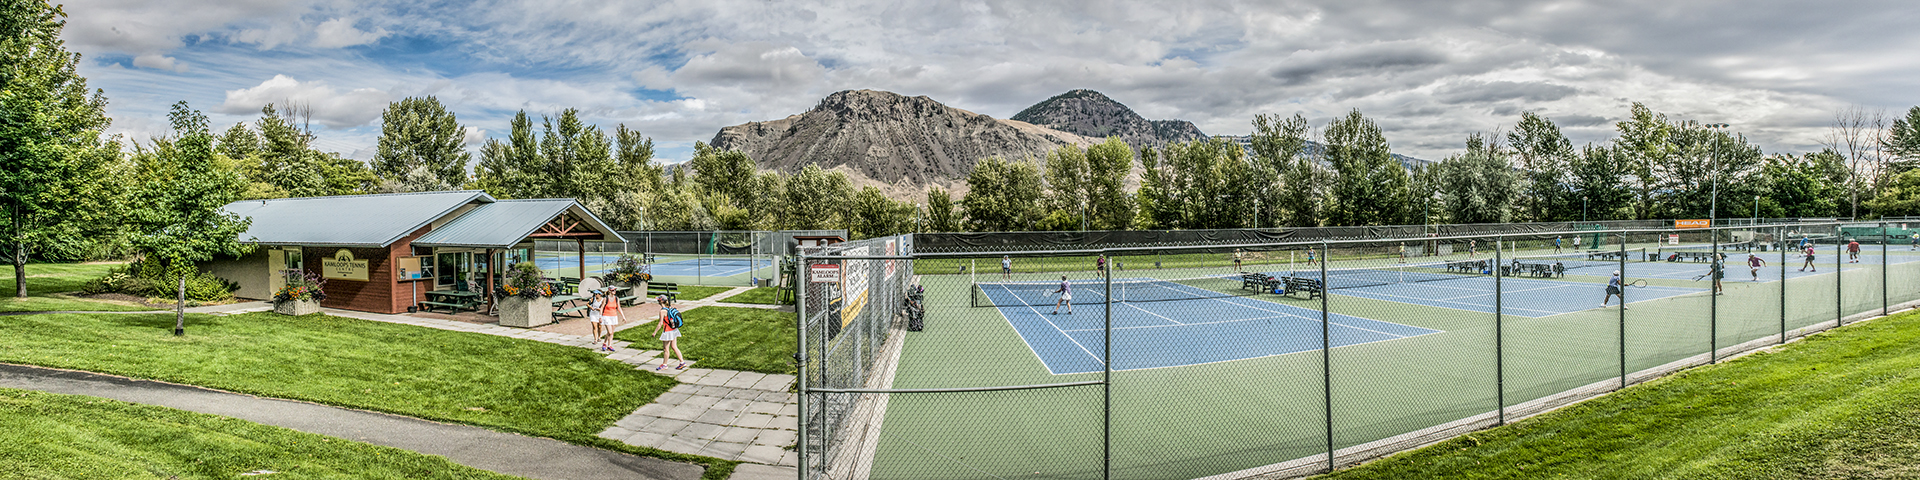 "<h3 style=""text-align:right"">Kamloops Tennis Centre</h3>  <p style=""text-align:right""><strong>758 Front Street,&nbsp;Kamloops, BC V2C 1V7&nbsp; &nbsp;&nbsp; Tel: 250-372-1783</strong></p>"